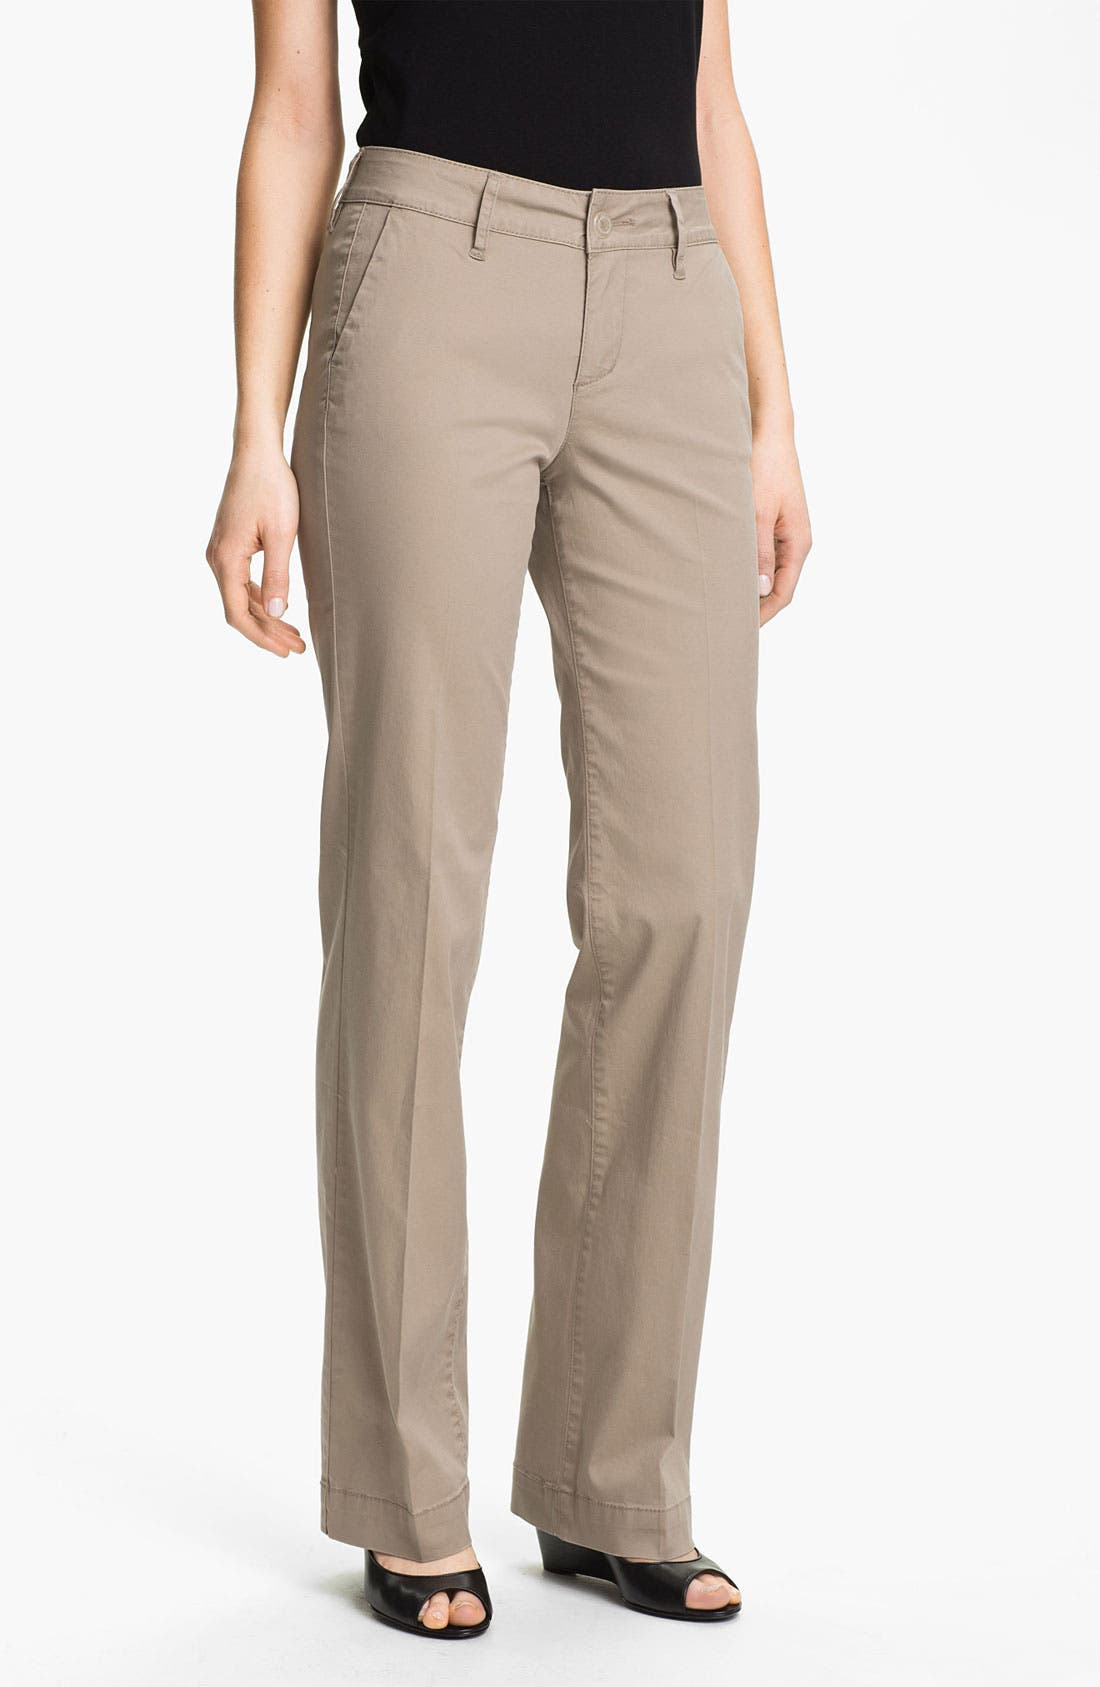 Alternate Image 1 Selected - Jag Jeans 'Maitland' Trousers (Petite)